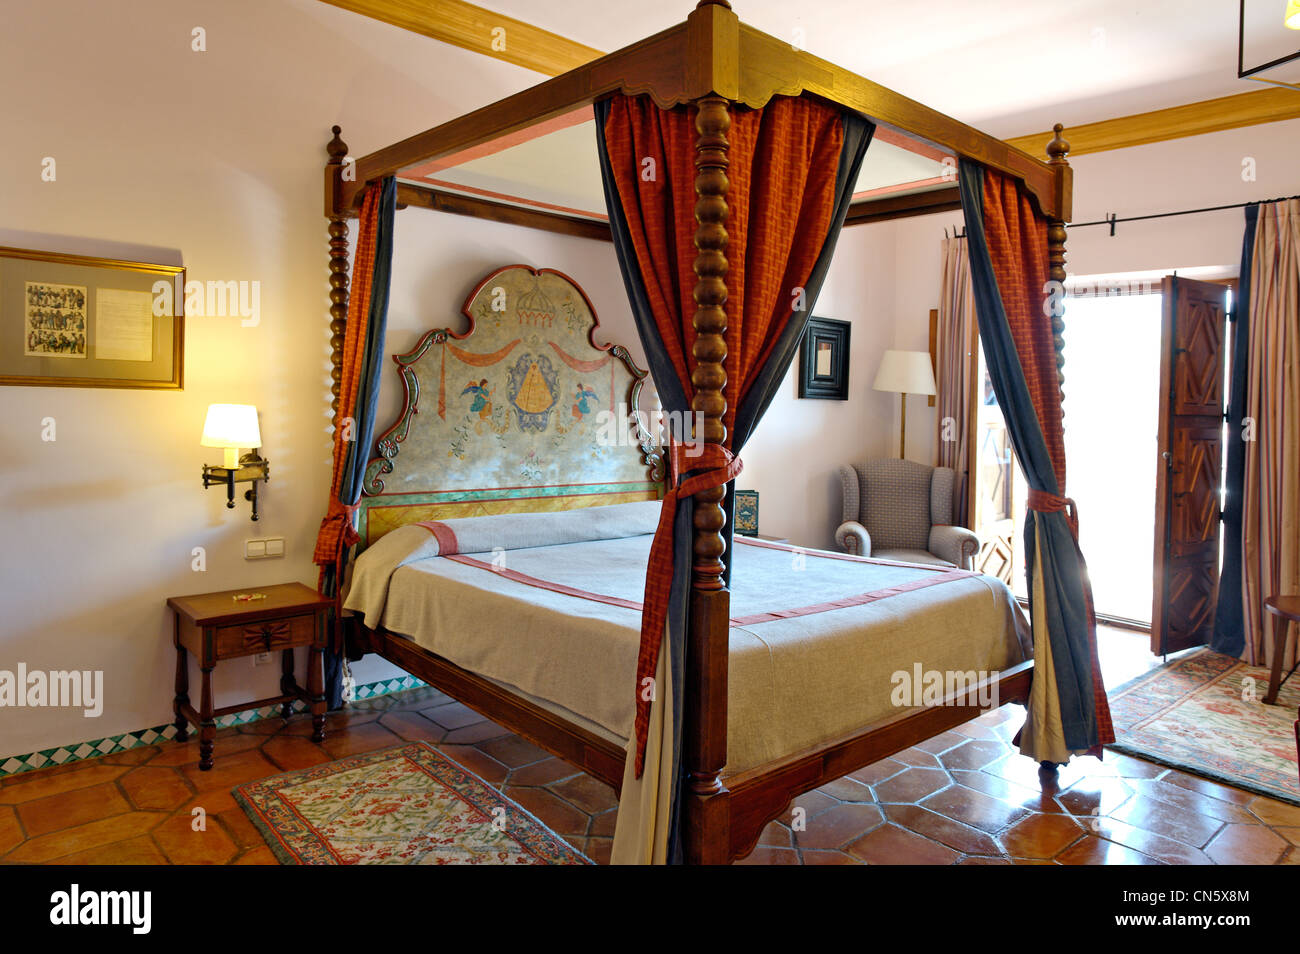 Spain, Extremadura, Guadalupe, Parador of Tourism, canopy bed in a bedroom - Stock Image